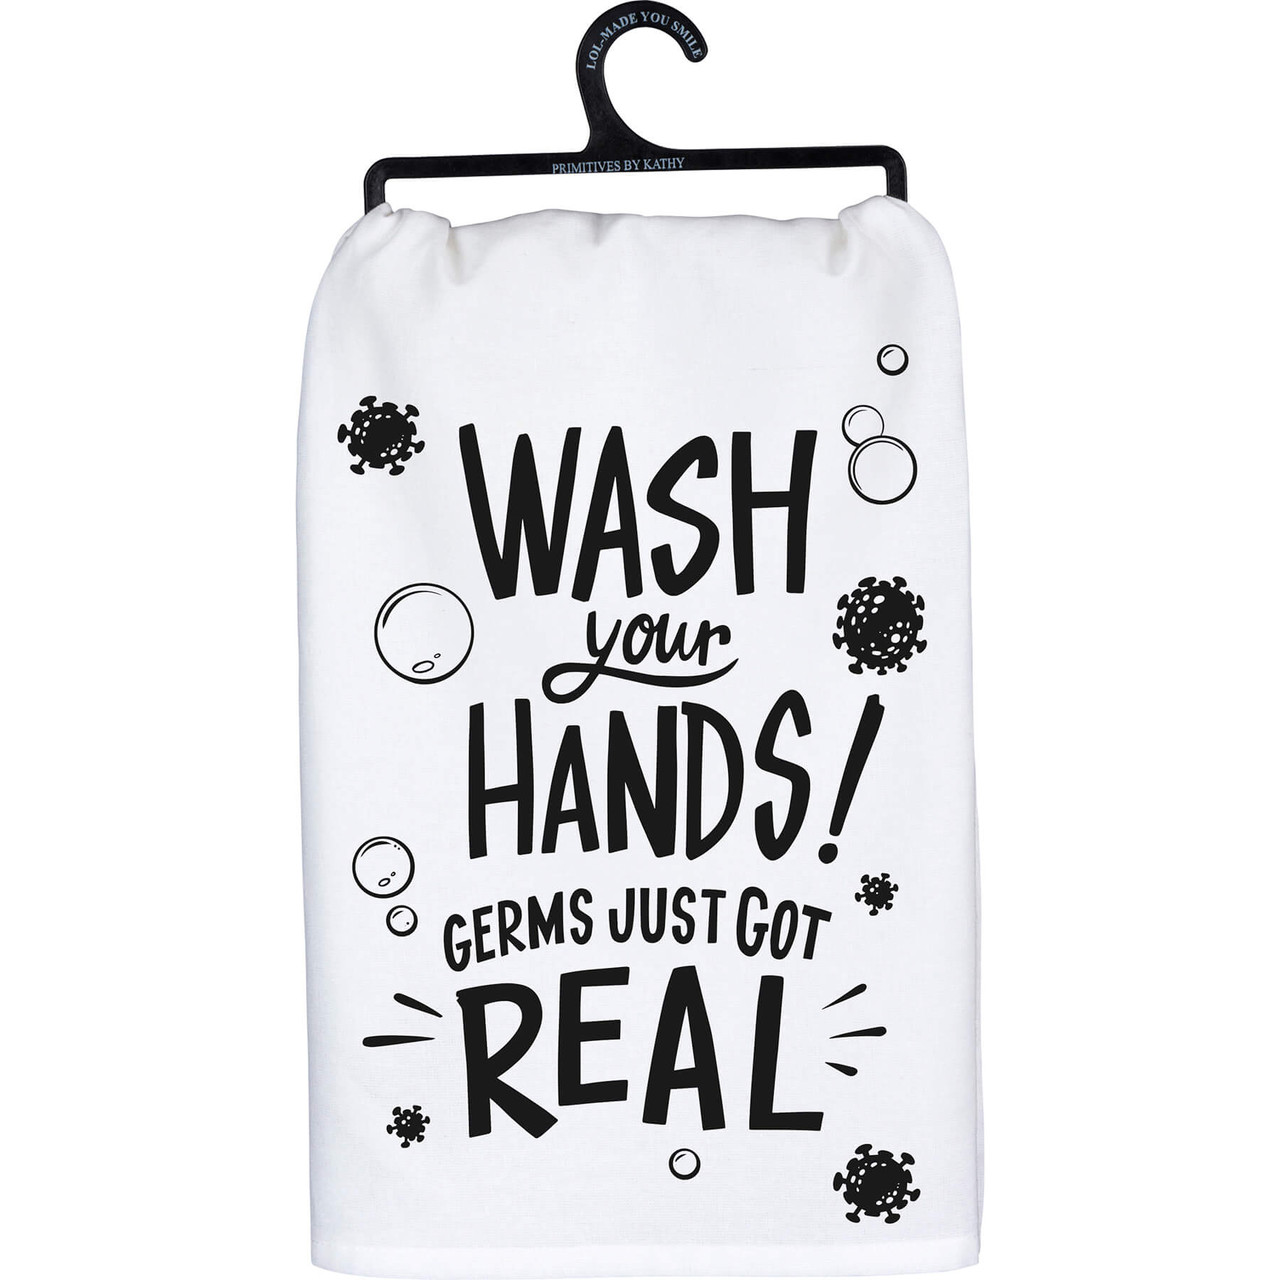 """Wash your hands! Germs just got real. Hand lettered sentiment that complements any kitchen or bar decor. Printed decoration on 28"""" x 18"""" 100% cotton. Machine wash hot with like colors; non-chlorine bleach; tumble dry low; medium heat iron."""